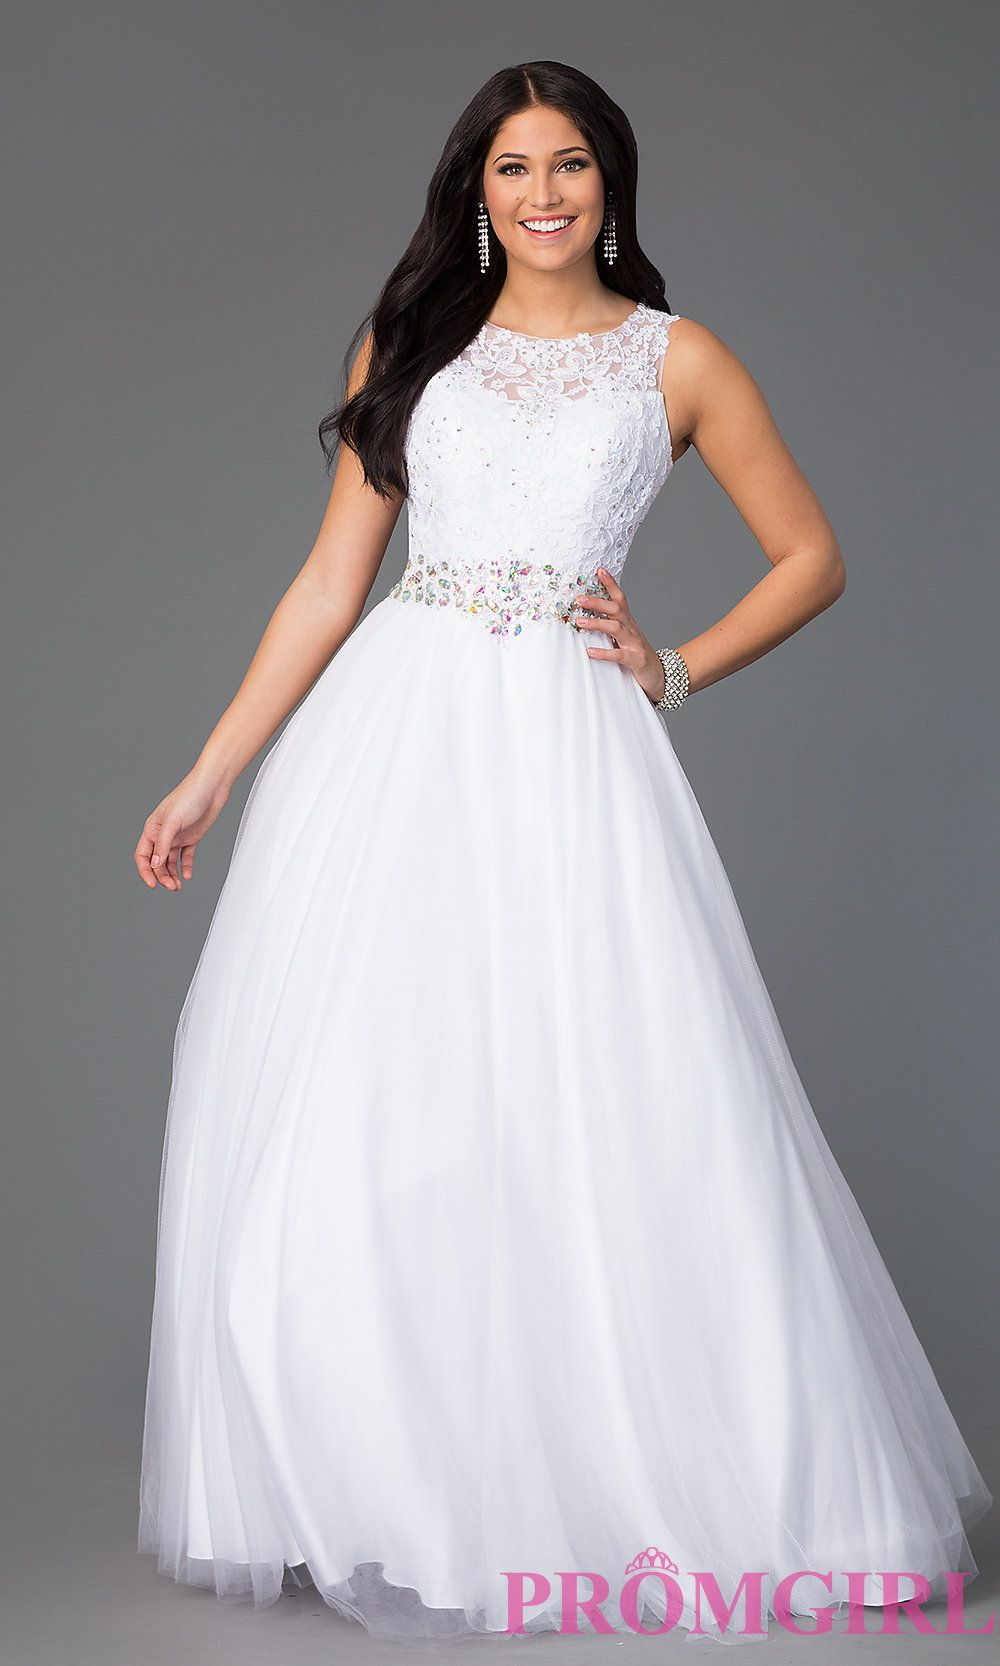 Floor length sleeveless gown with lace bodice lace bodice